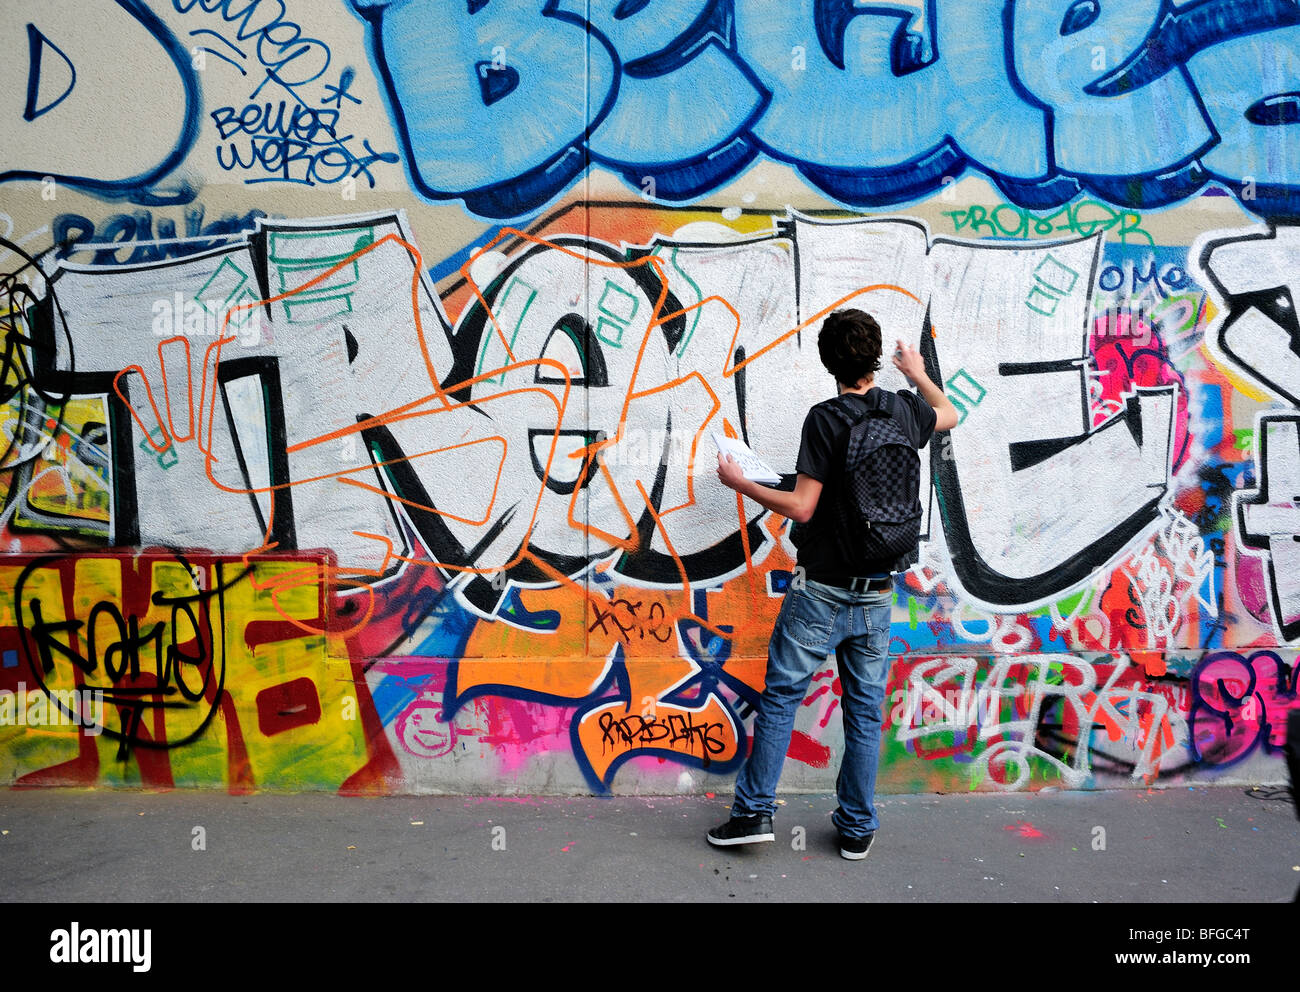 Paris, France, Street Scene, Young Male Teen Street Graffer, Painting Wall with Spray Paint, Graffiti - Stock Image